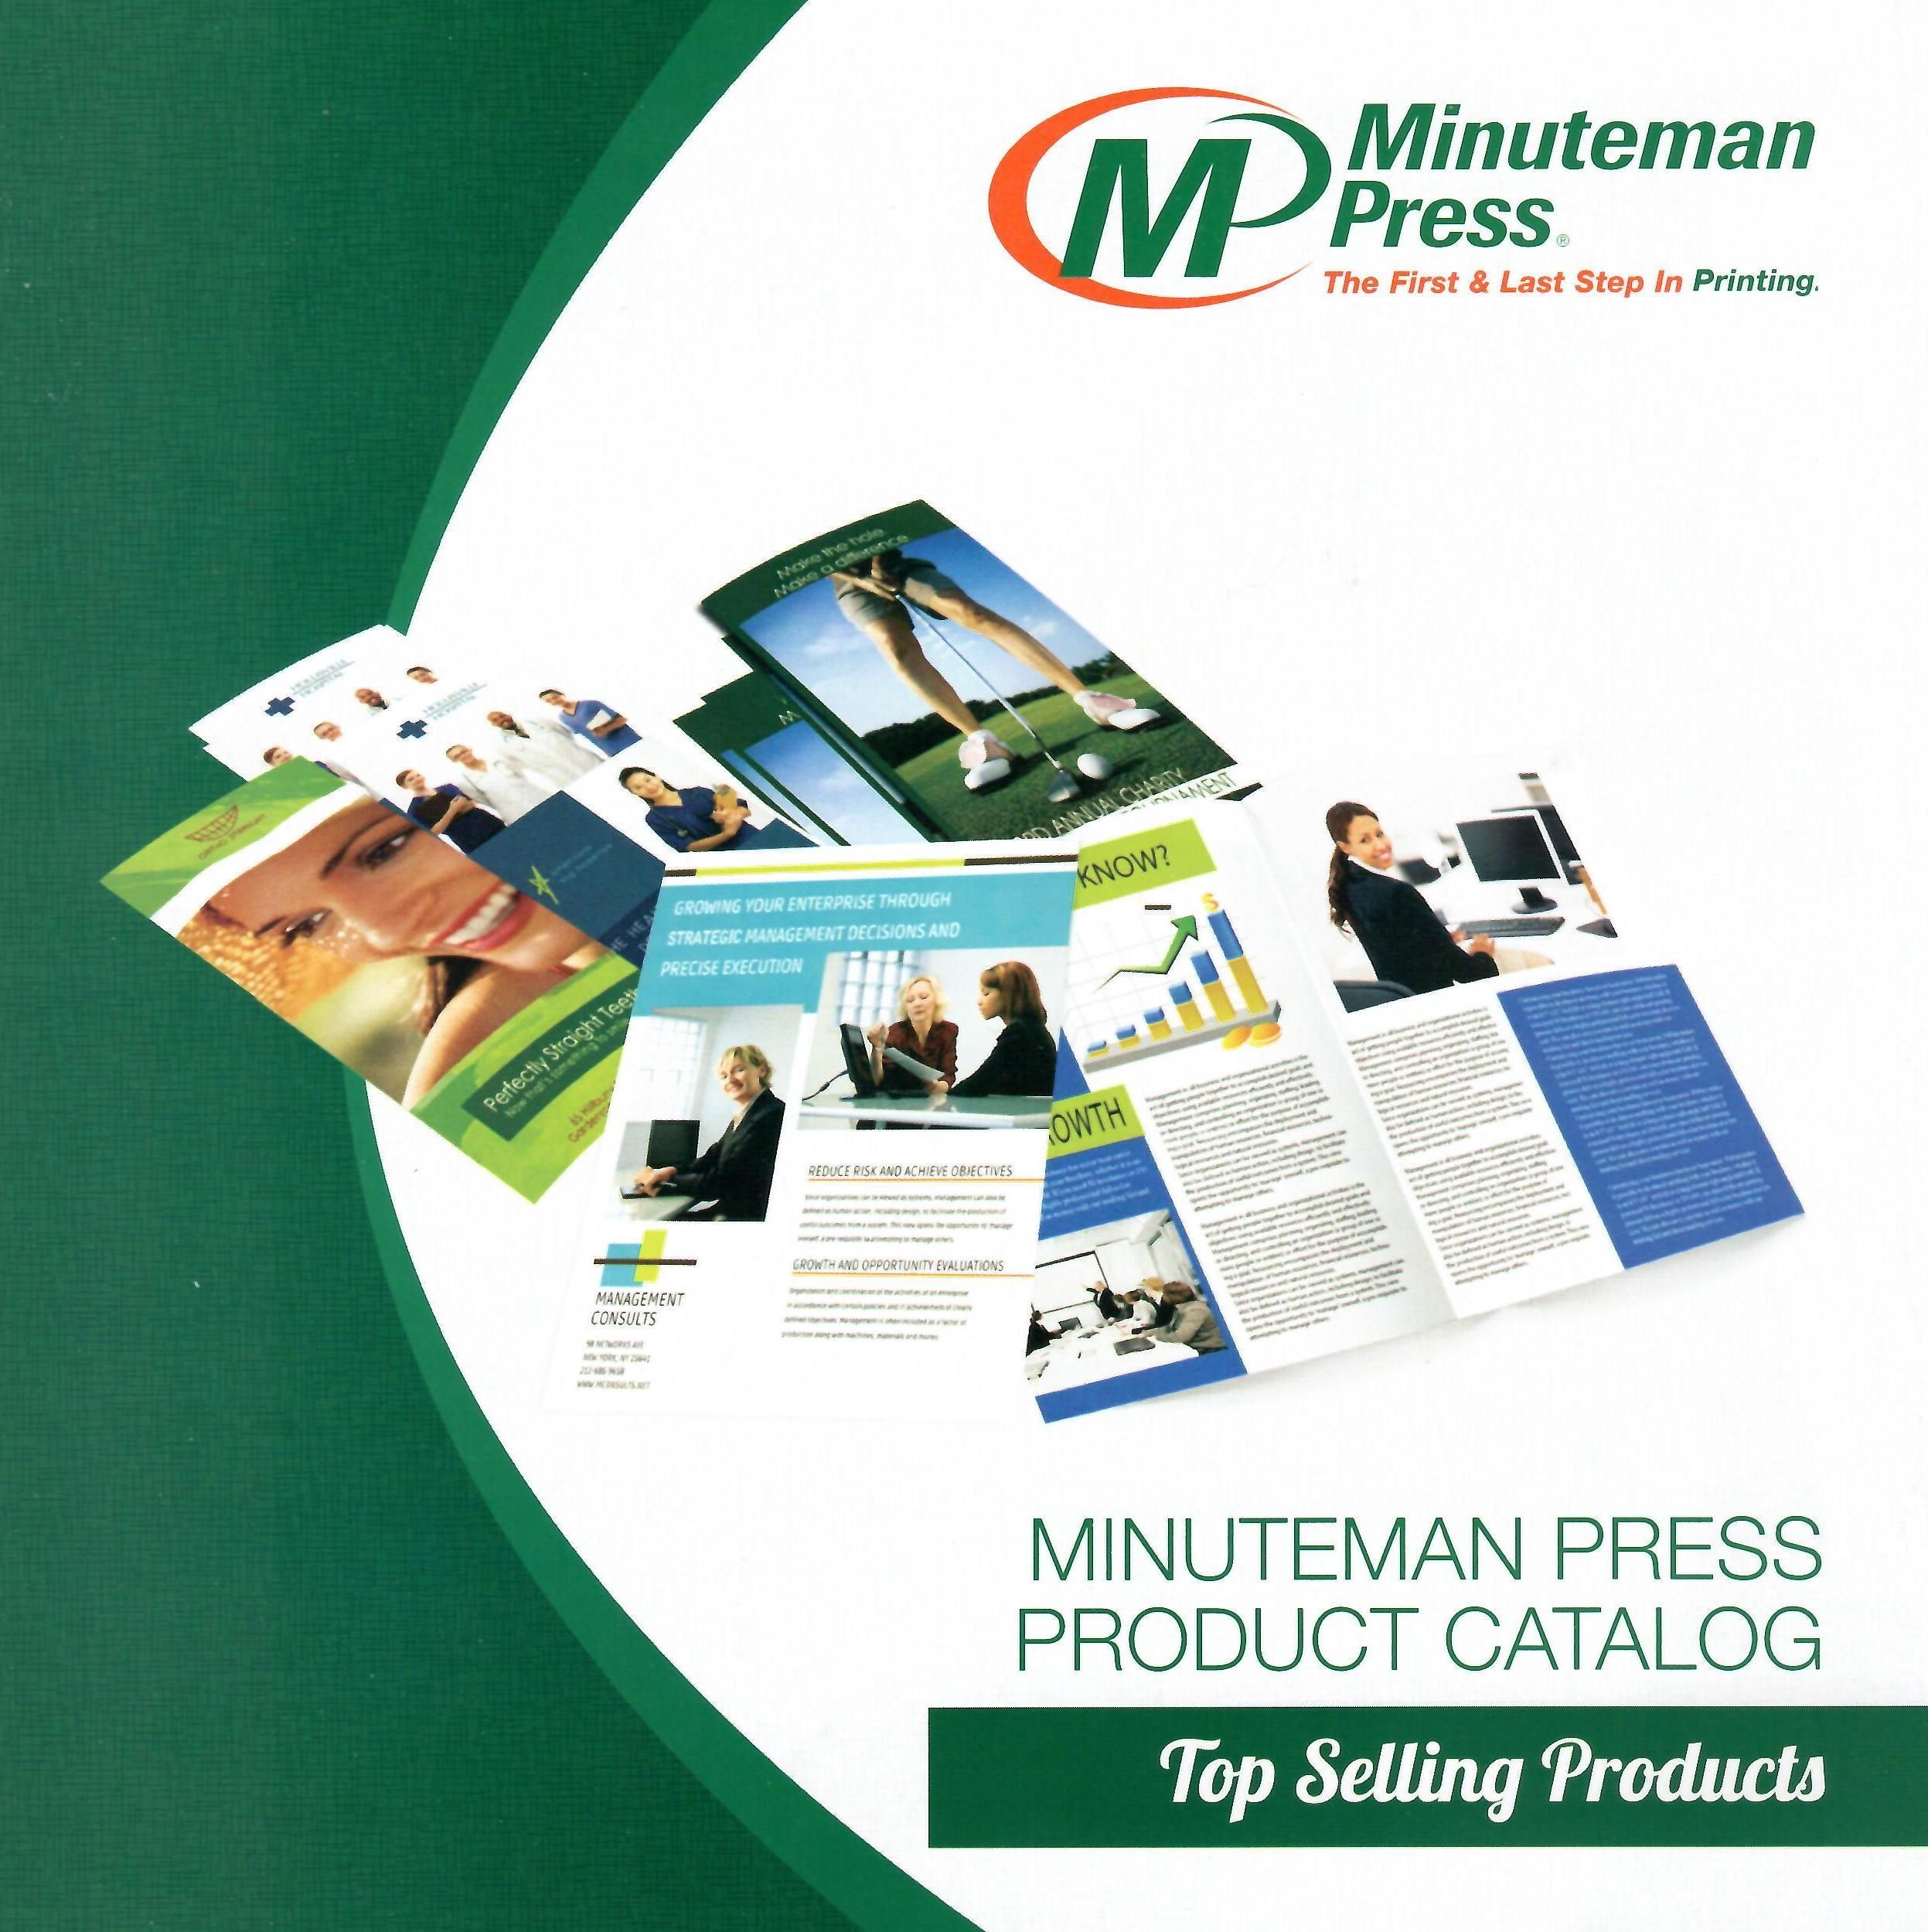 At Minuteman Press Champaign, we build our business by helping you build yours. We want to be more than just your printer, we want to be your marketing and printing partner.